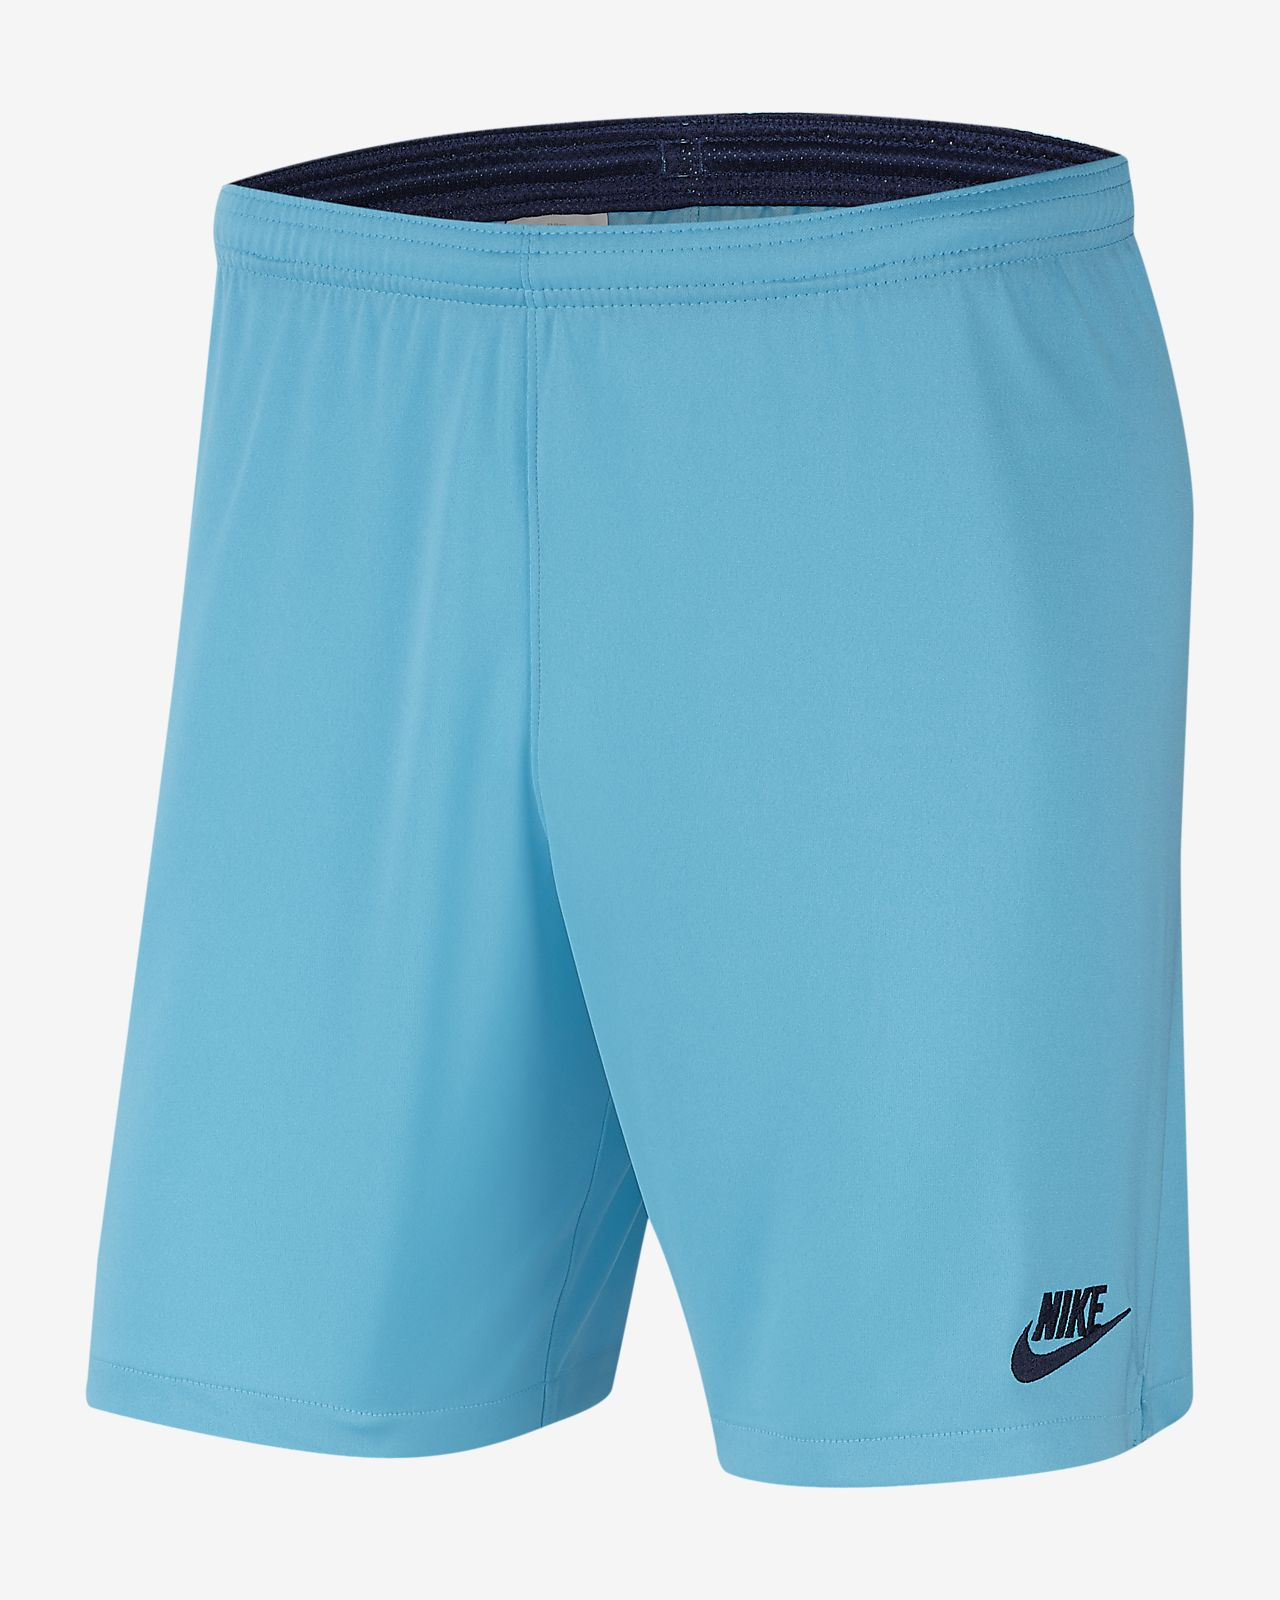 Tottenham Hotspur 2019/20 Stadium Third Men's Football Shorts